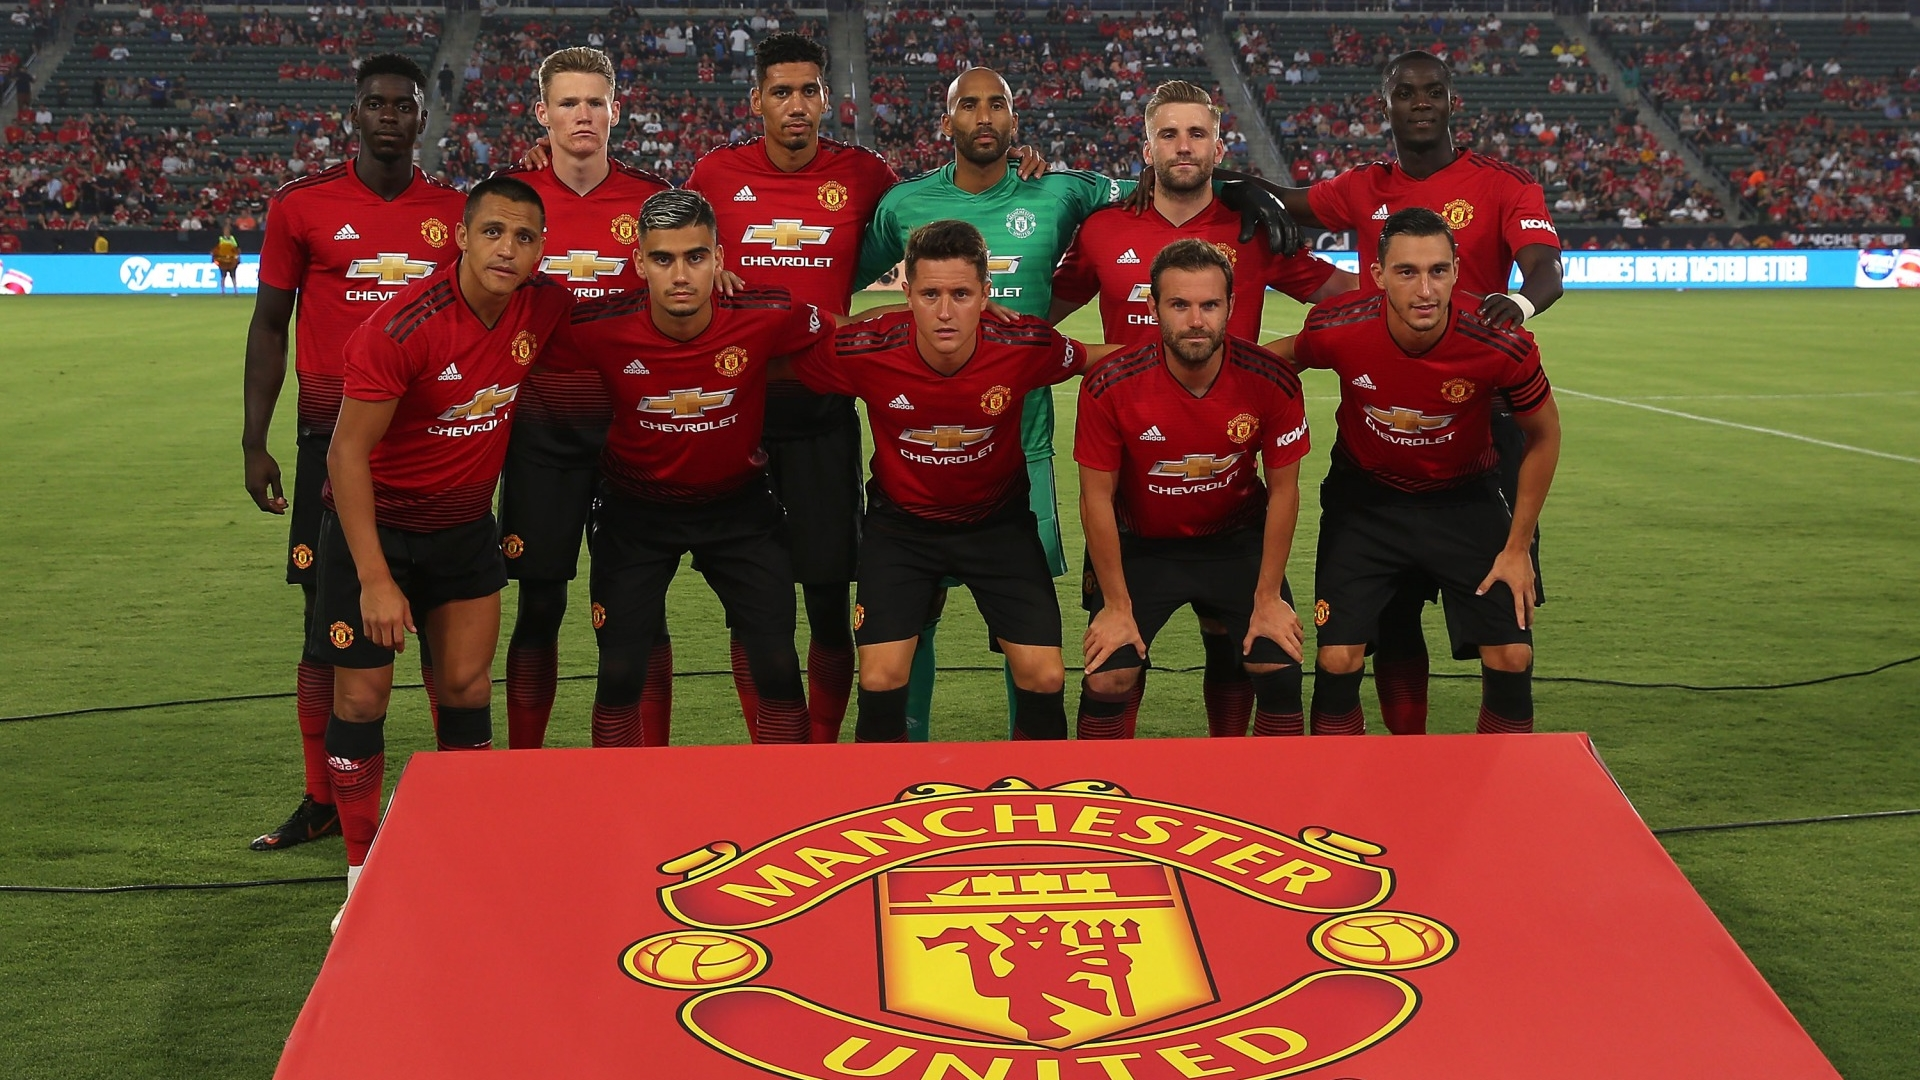 manchester united-2018_2019-home uniform3